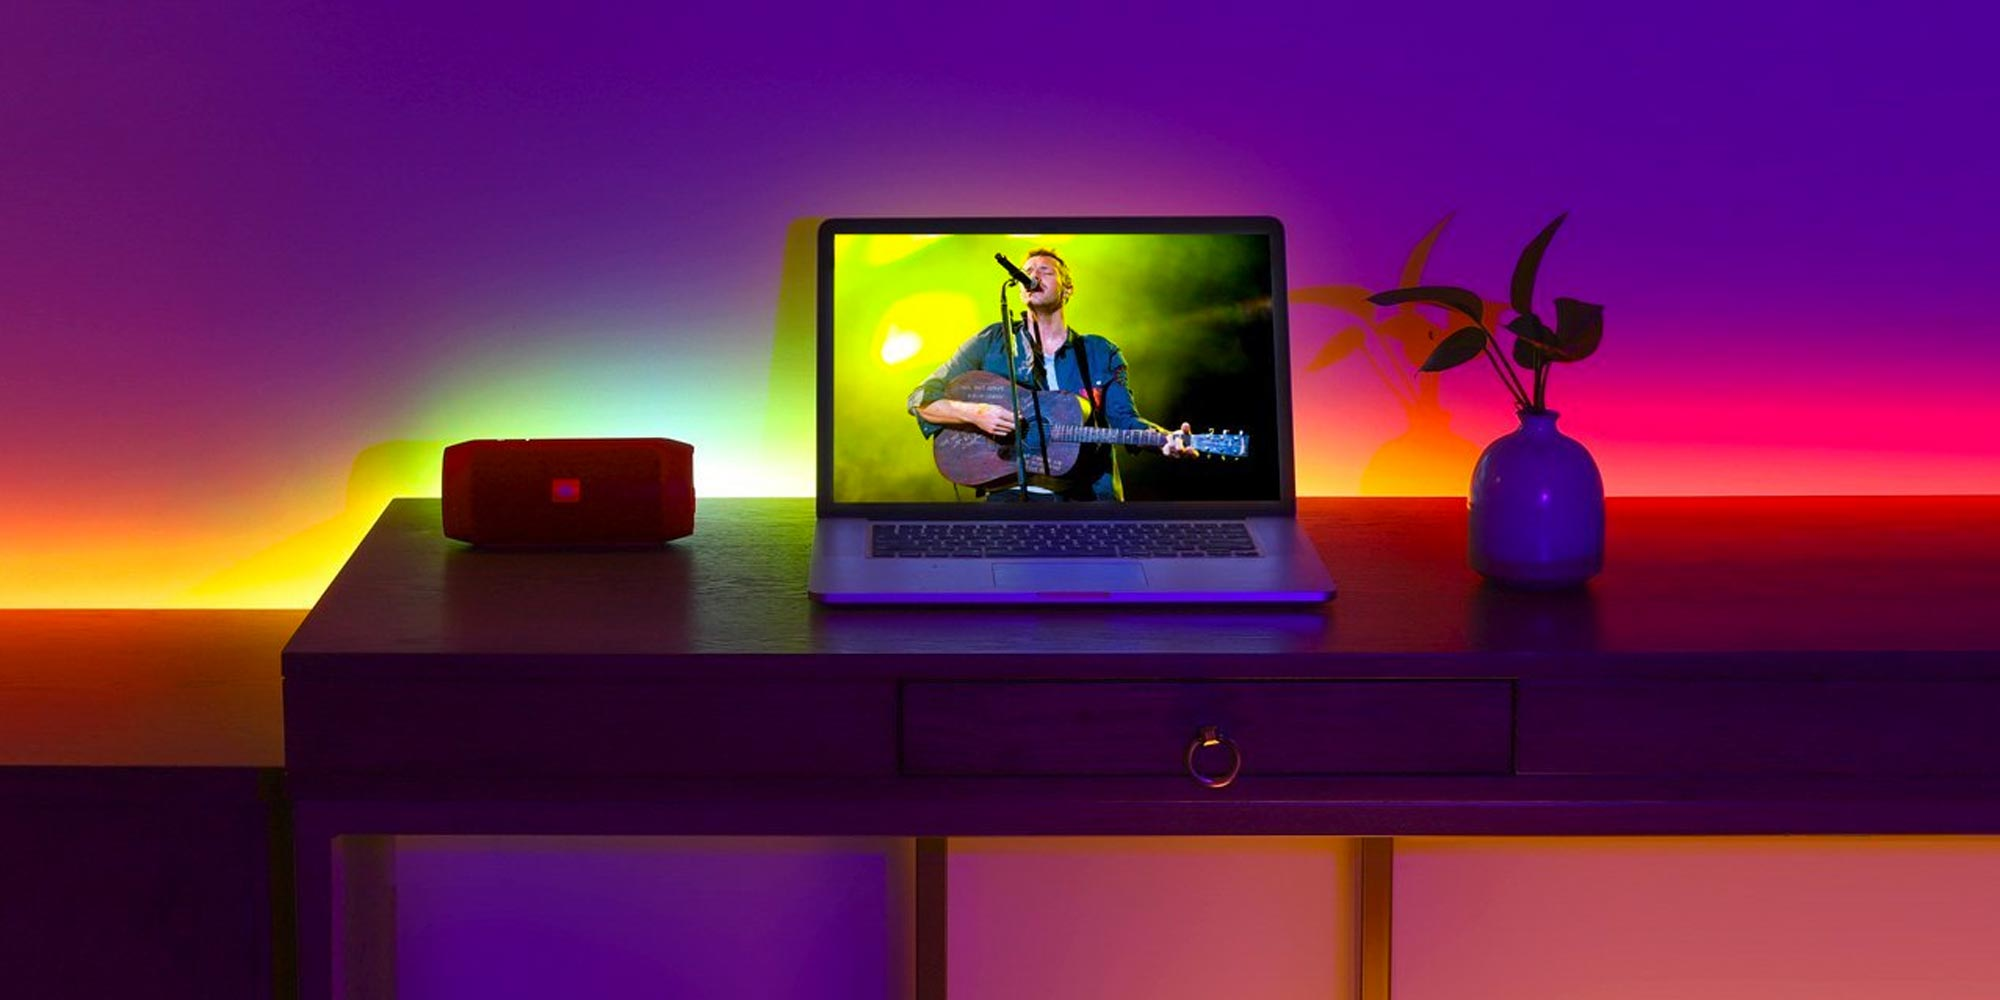 For just $10 you can add this RGB LED light strip to any space inside (or outside) of your home